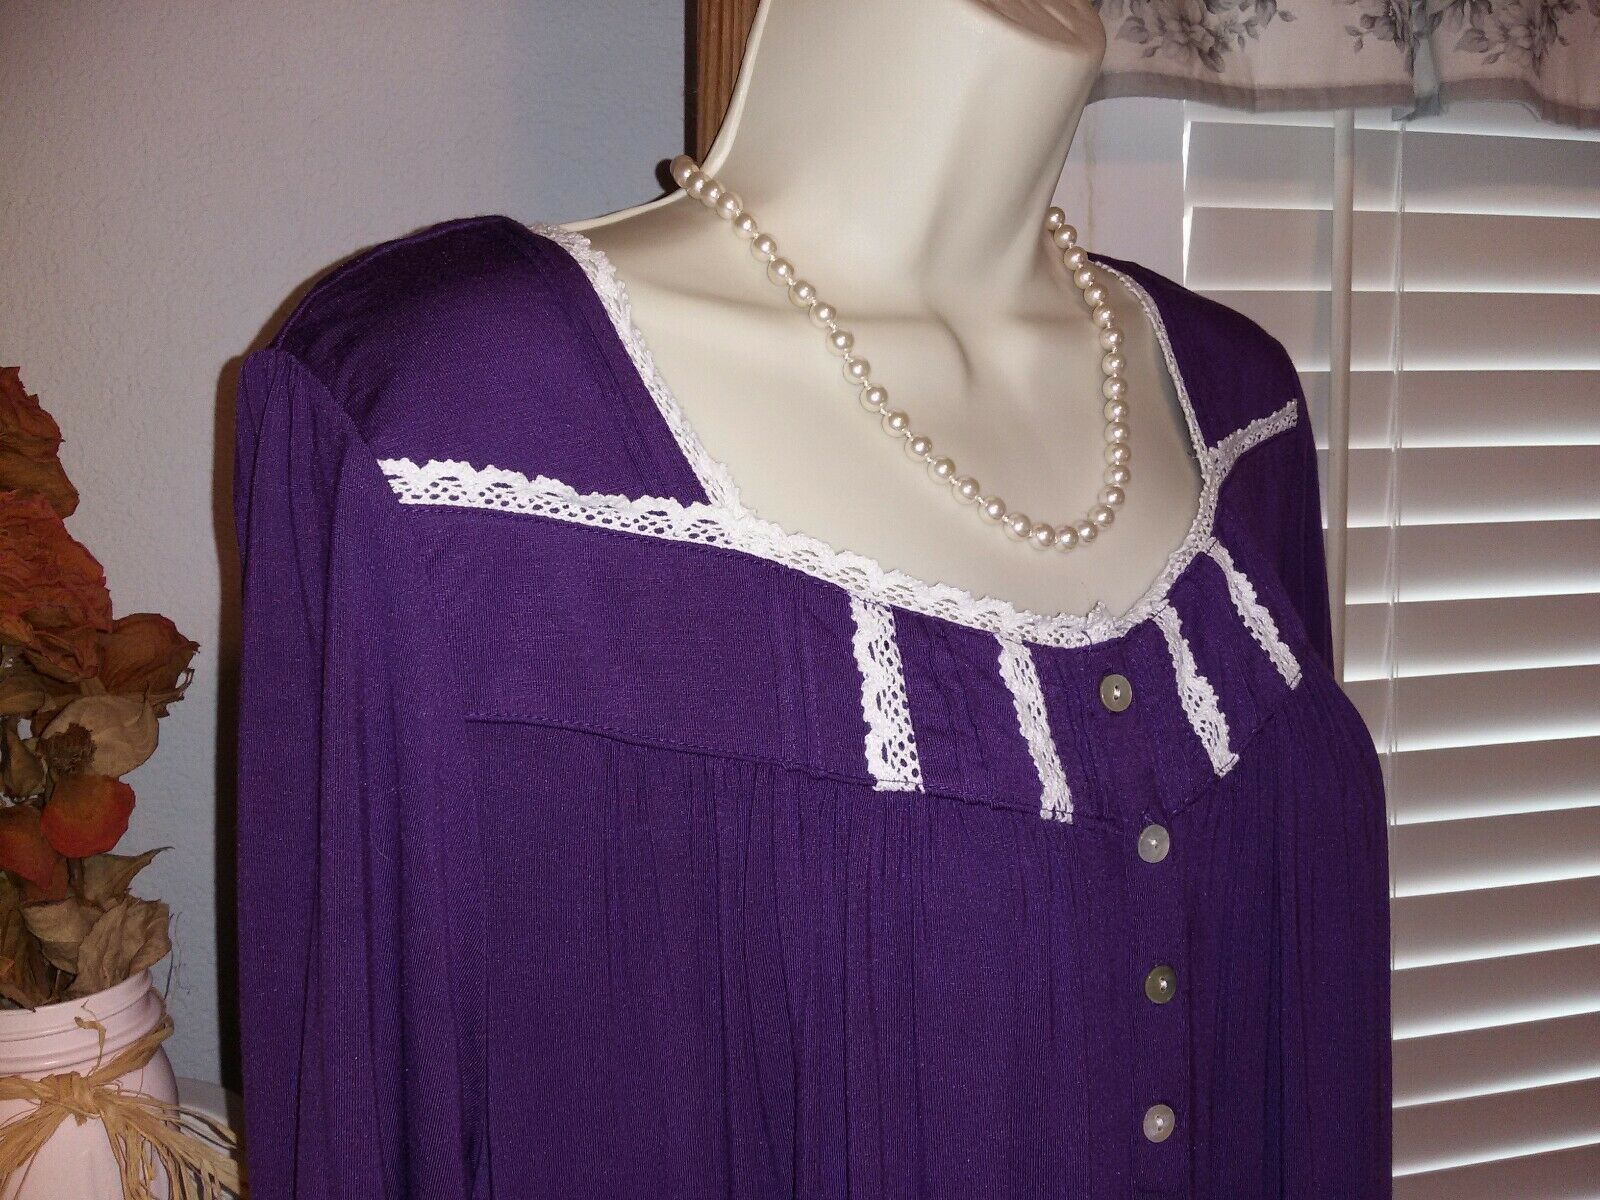 NWT M Medium Eileen West Nightgown Micro Modal Knit Gown LONG NEW  70 Purple